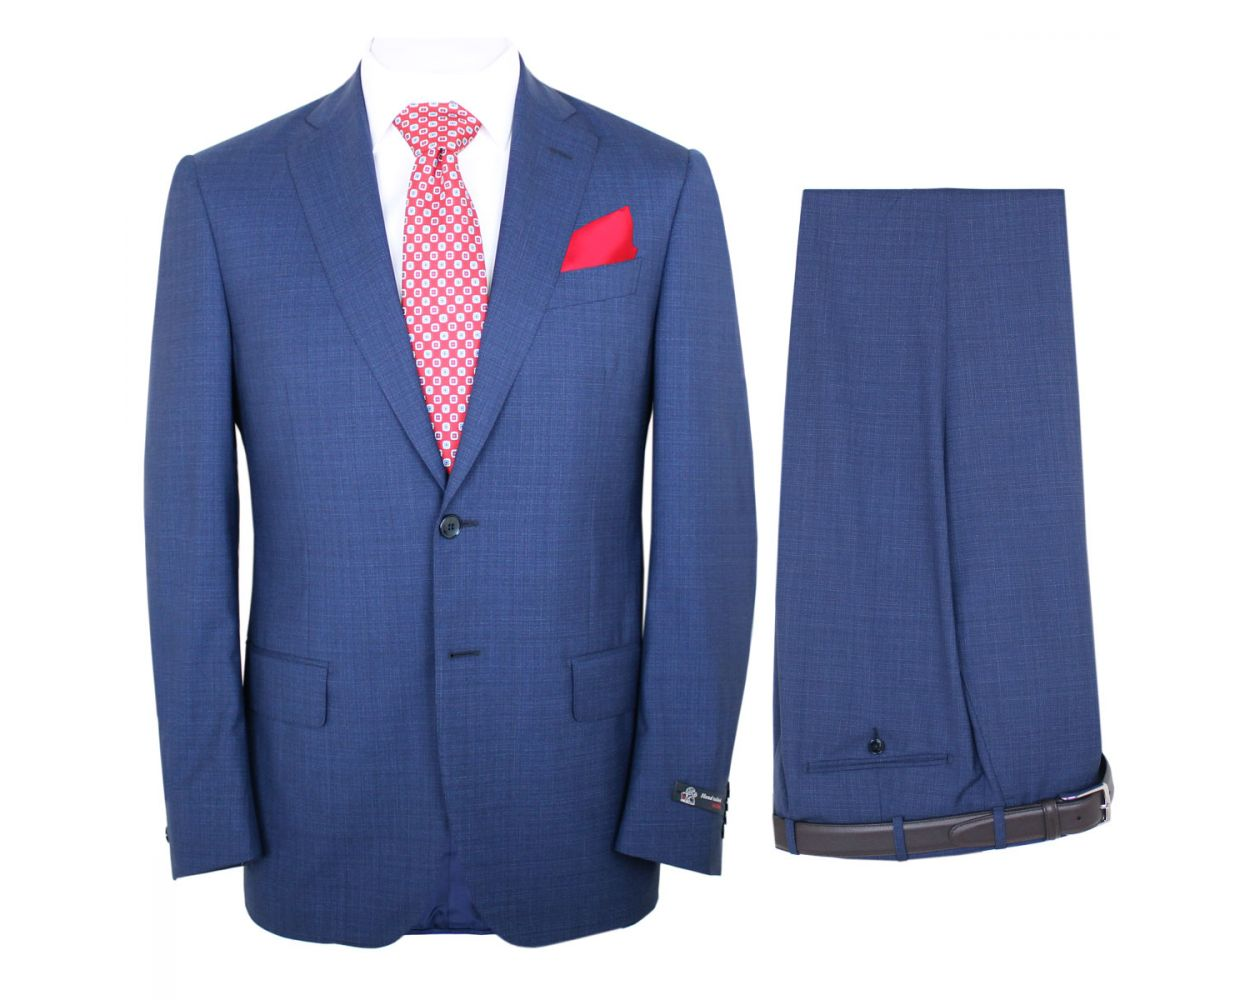 Robert Old Loro Piana Fresco Check Merino Wool Two Piece Suit